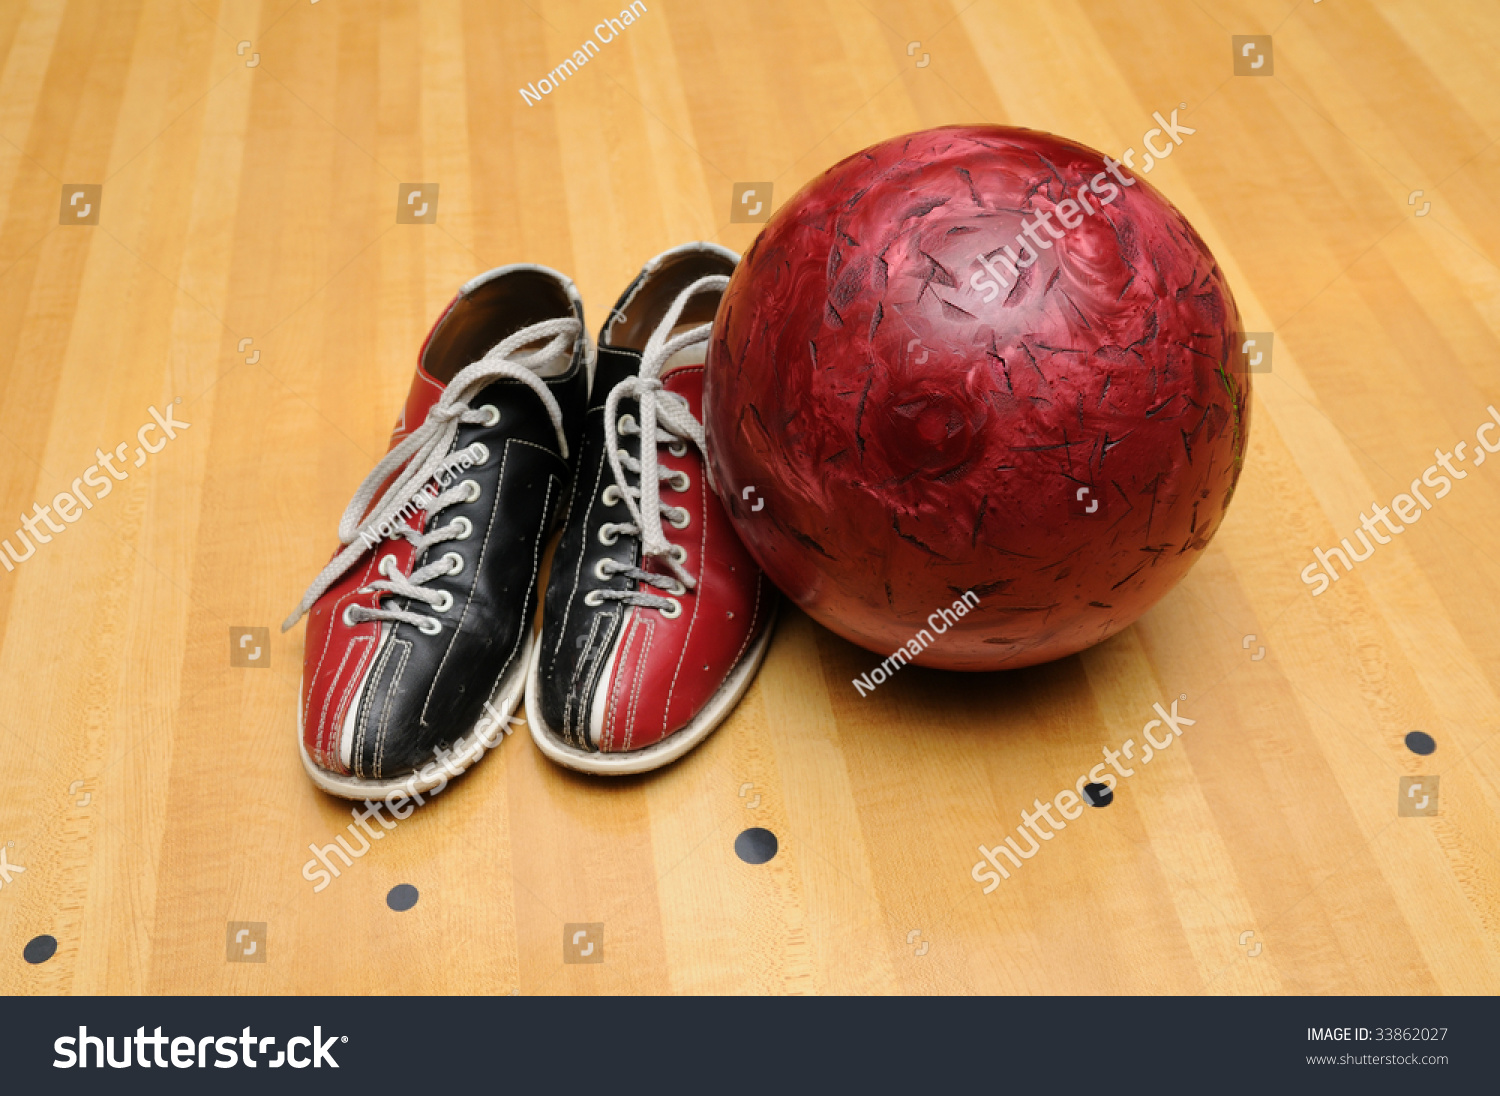 Bowling Shoes Ball On Lane Stock Photo 33862027 - Shutterstock